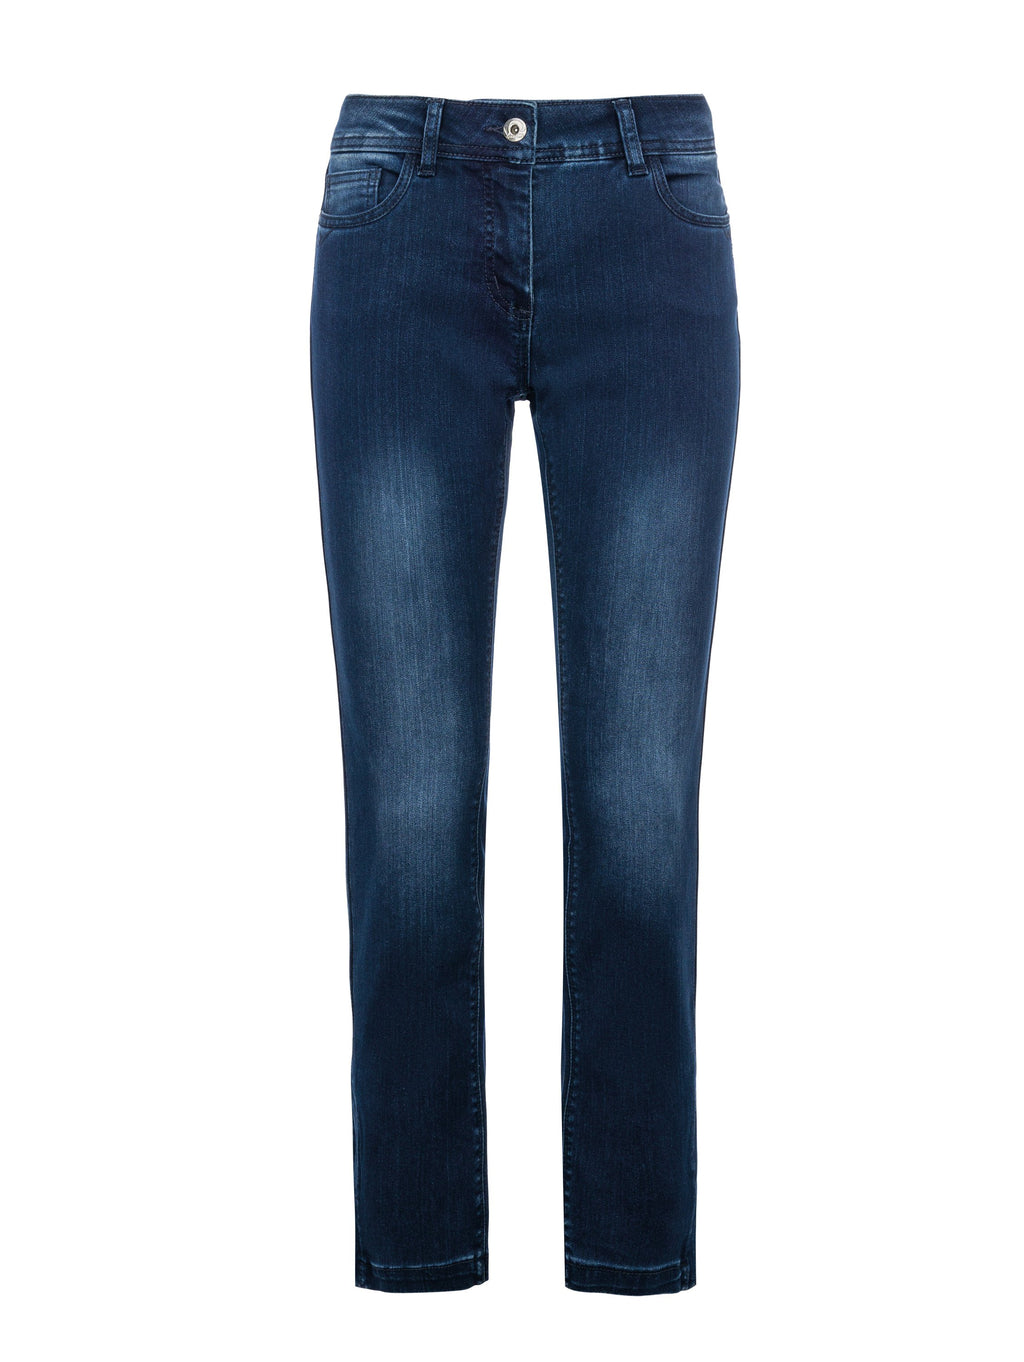 Damen Jeans Victoria 7/8 powerstretch